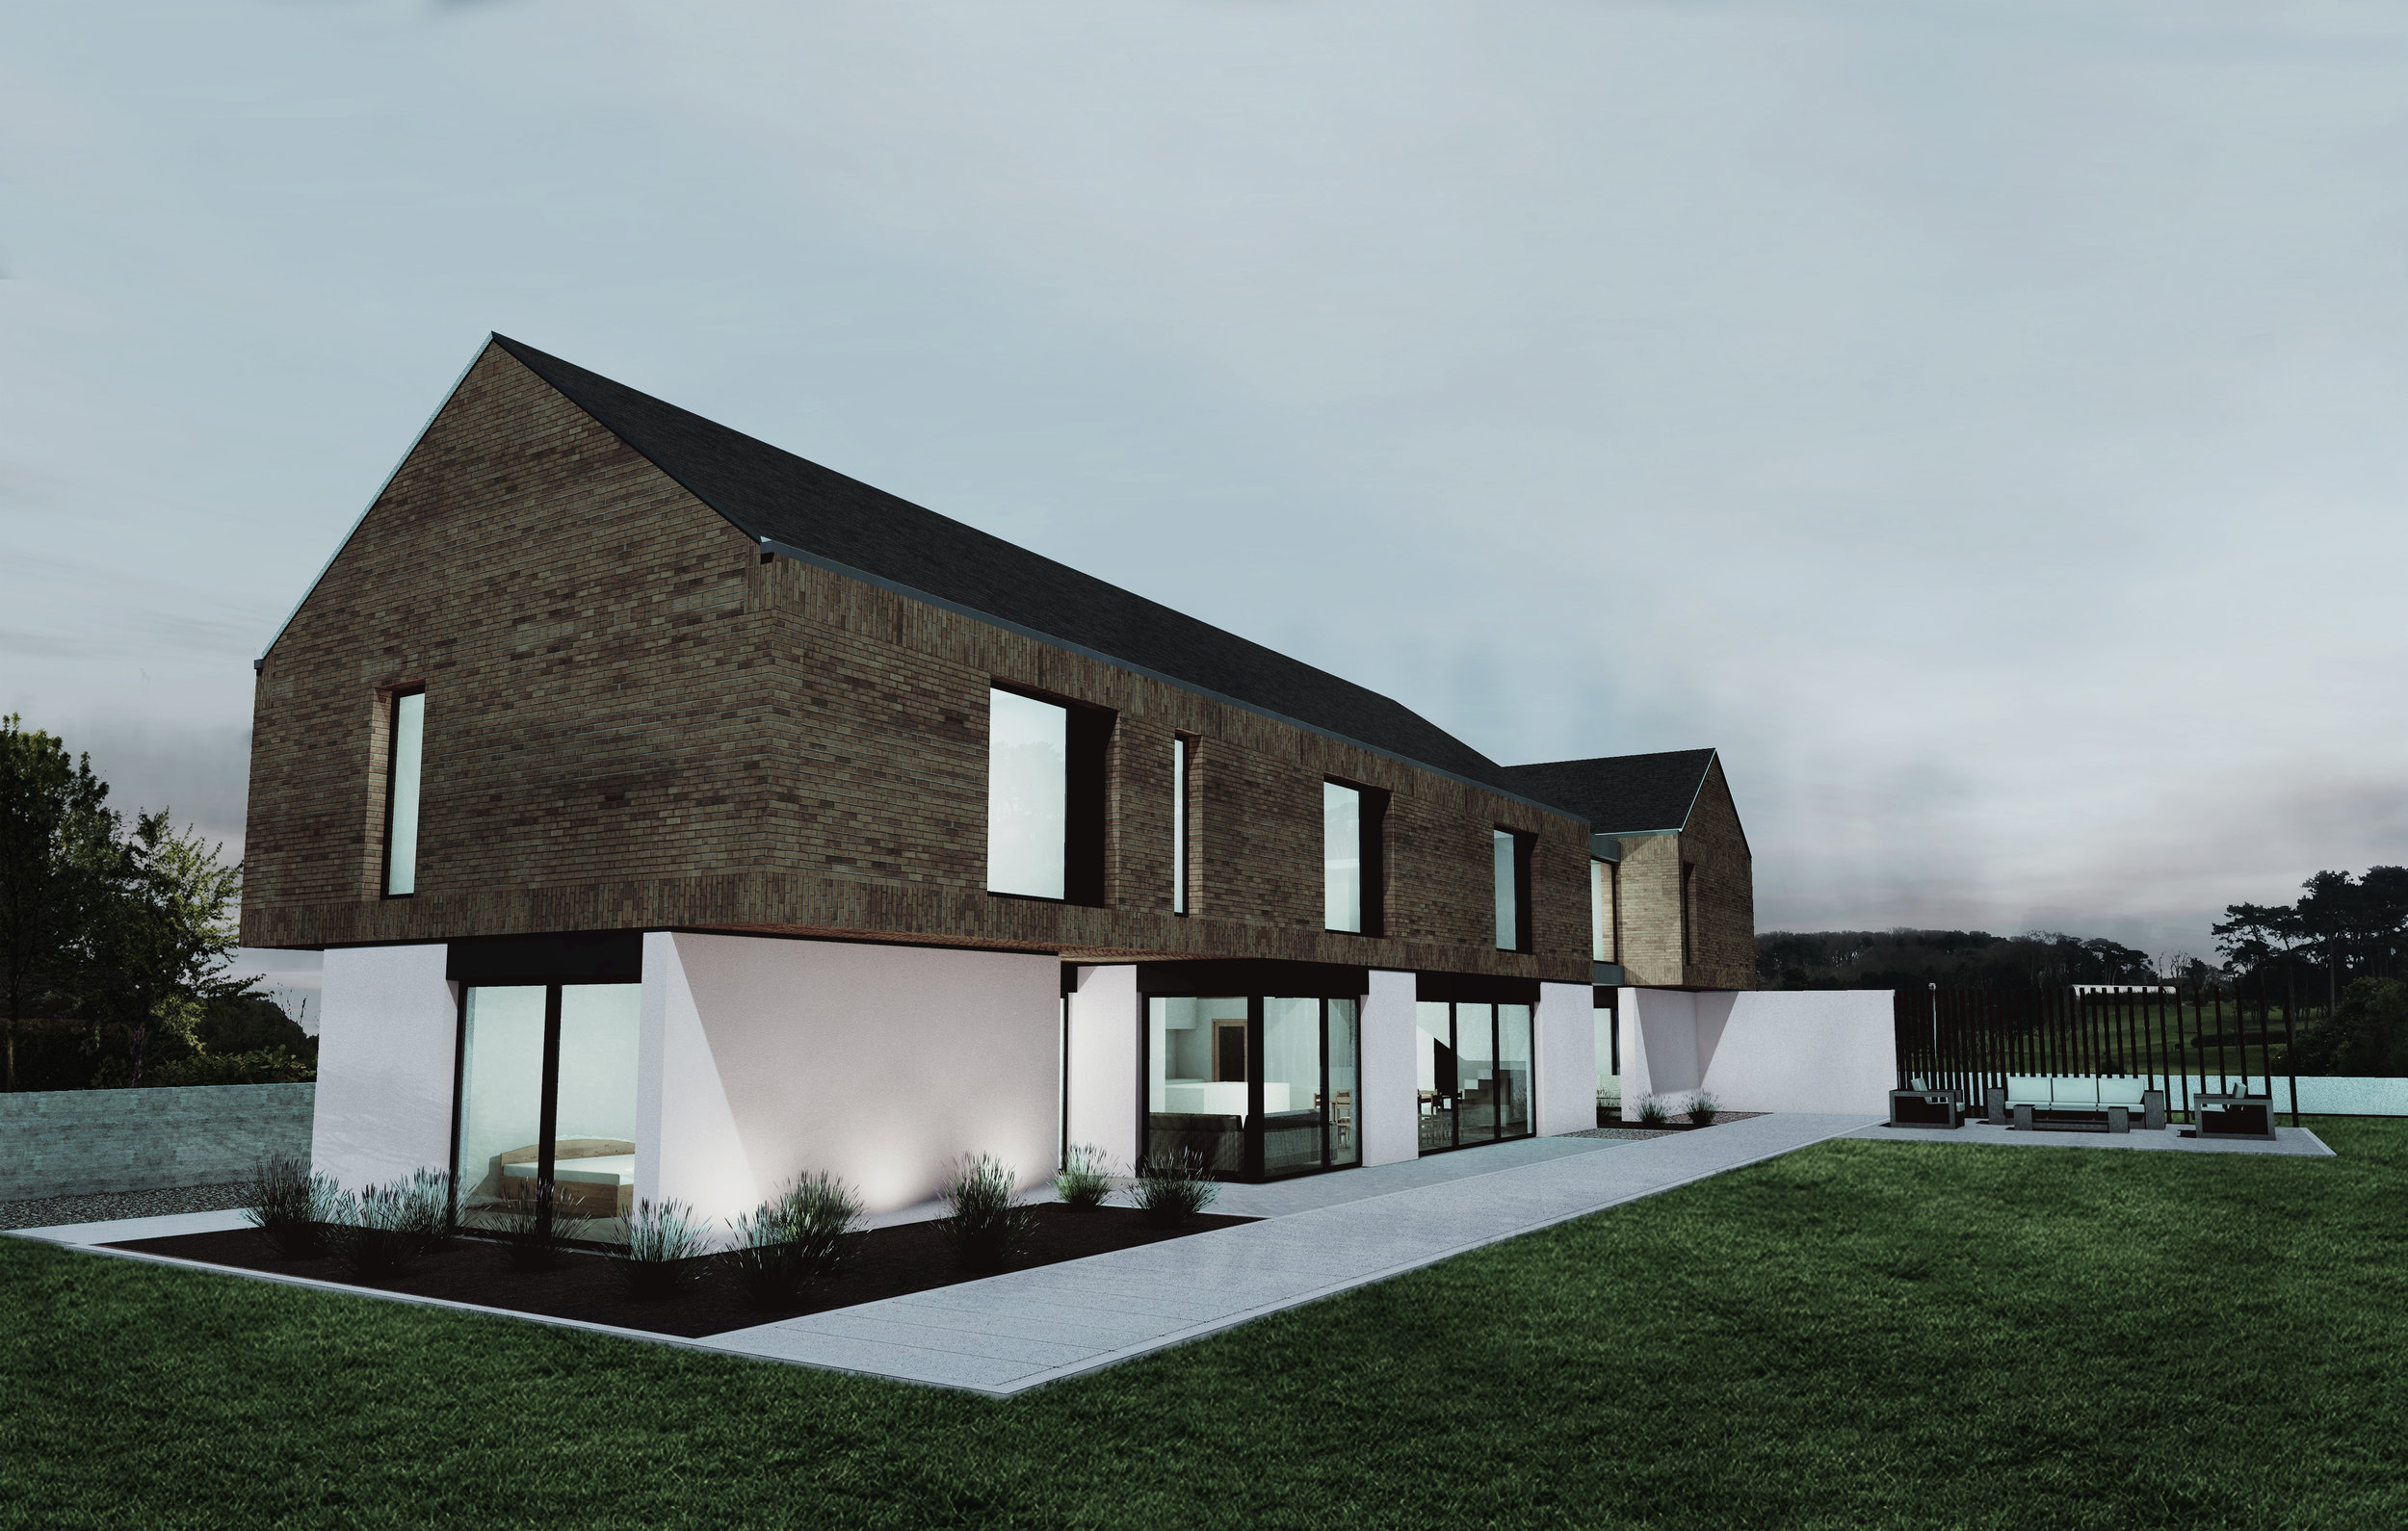 Helen's Bay House - reclaimed brick, aluminium panels, white render